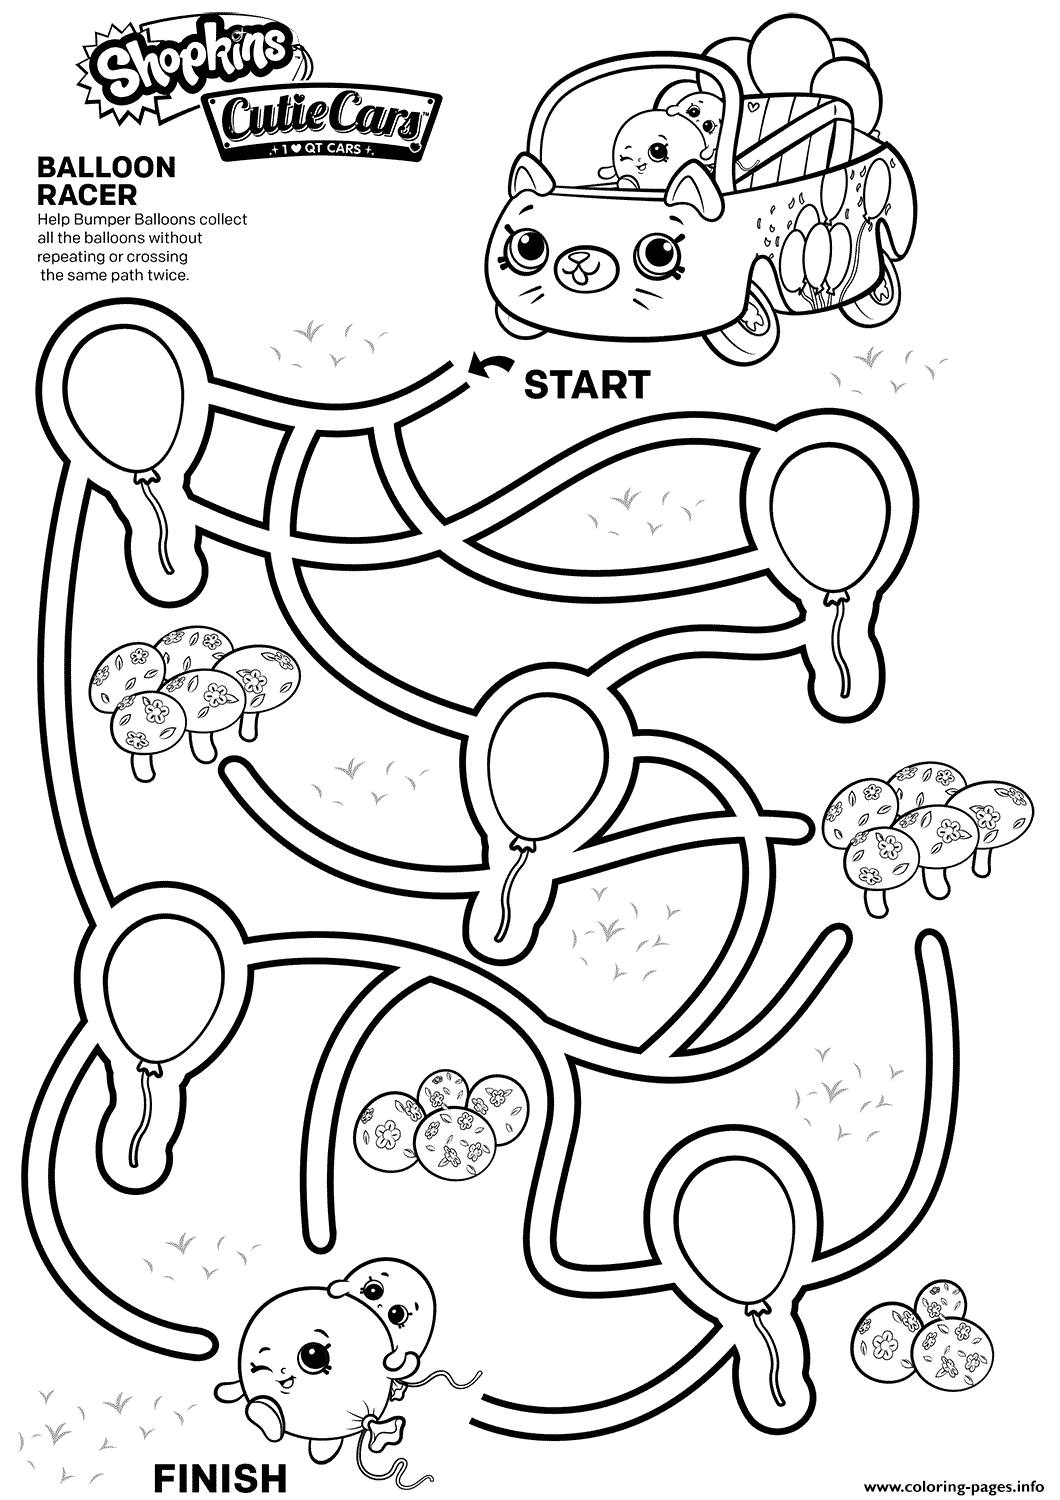 Easy Shopkins Maze For Kids Coloring Pages Printable